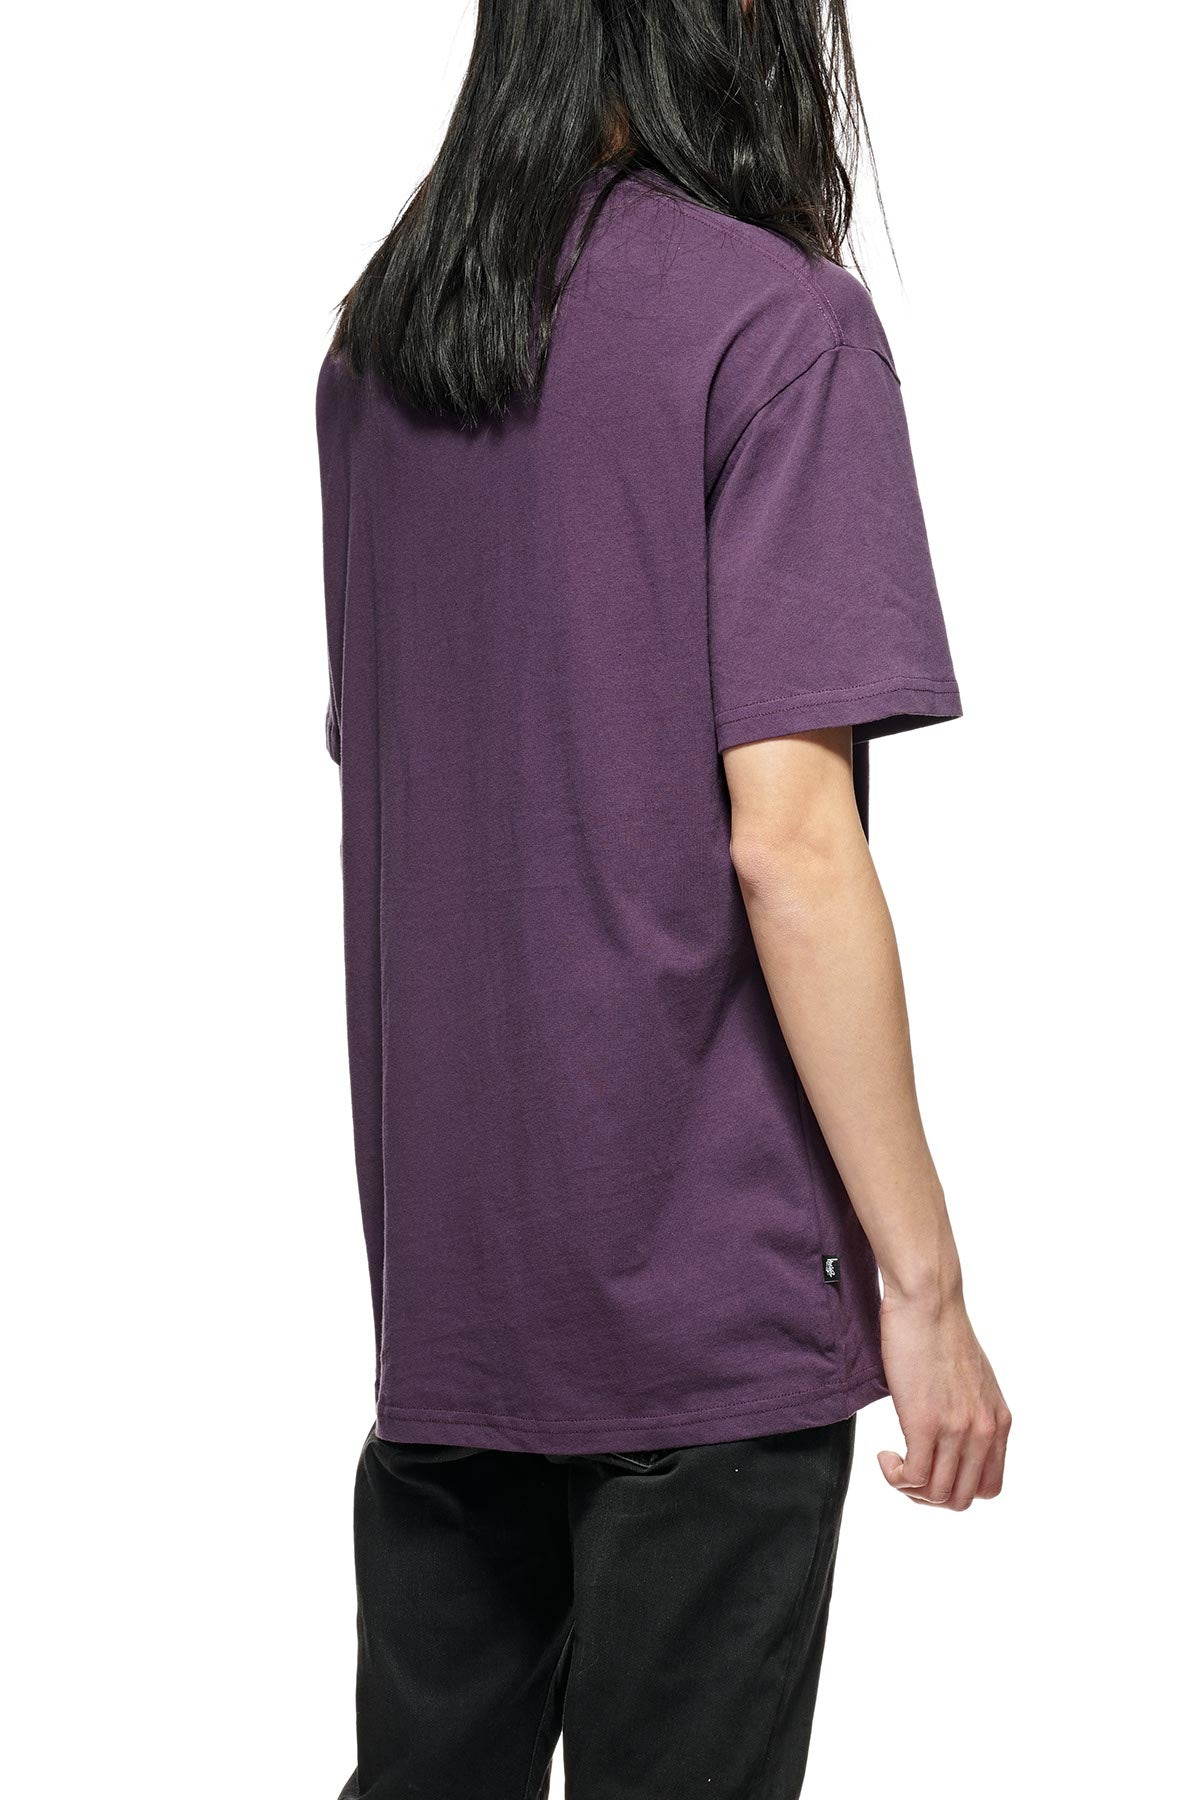 Work Label Pocket Tee - R8gzwear